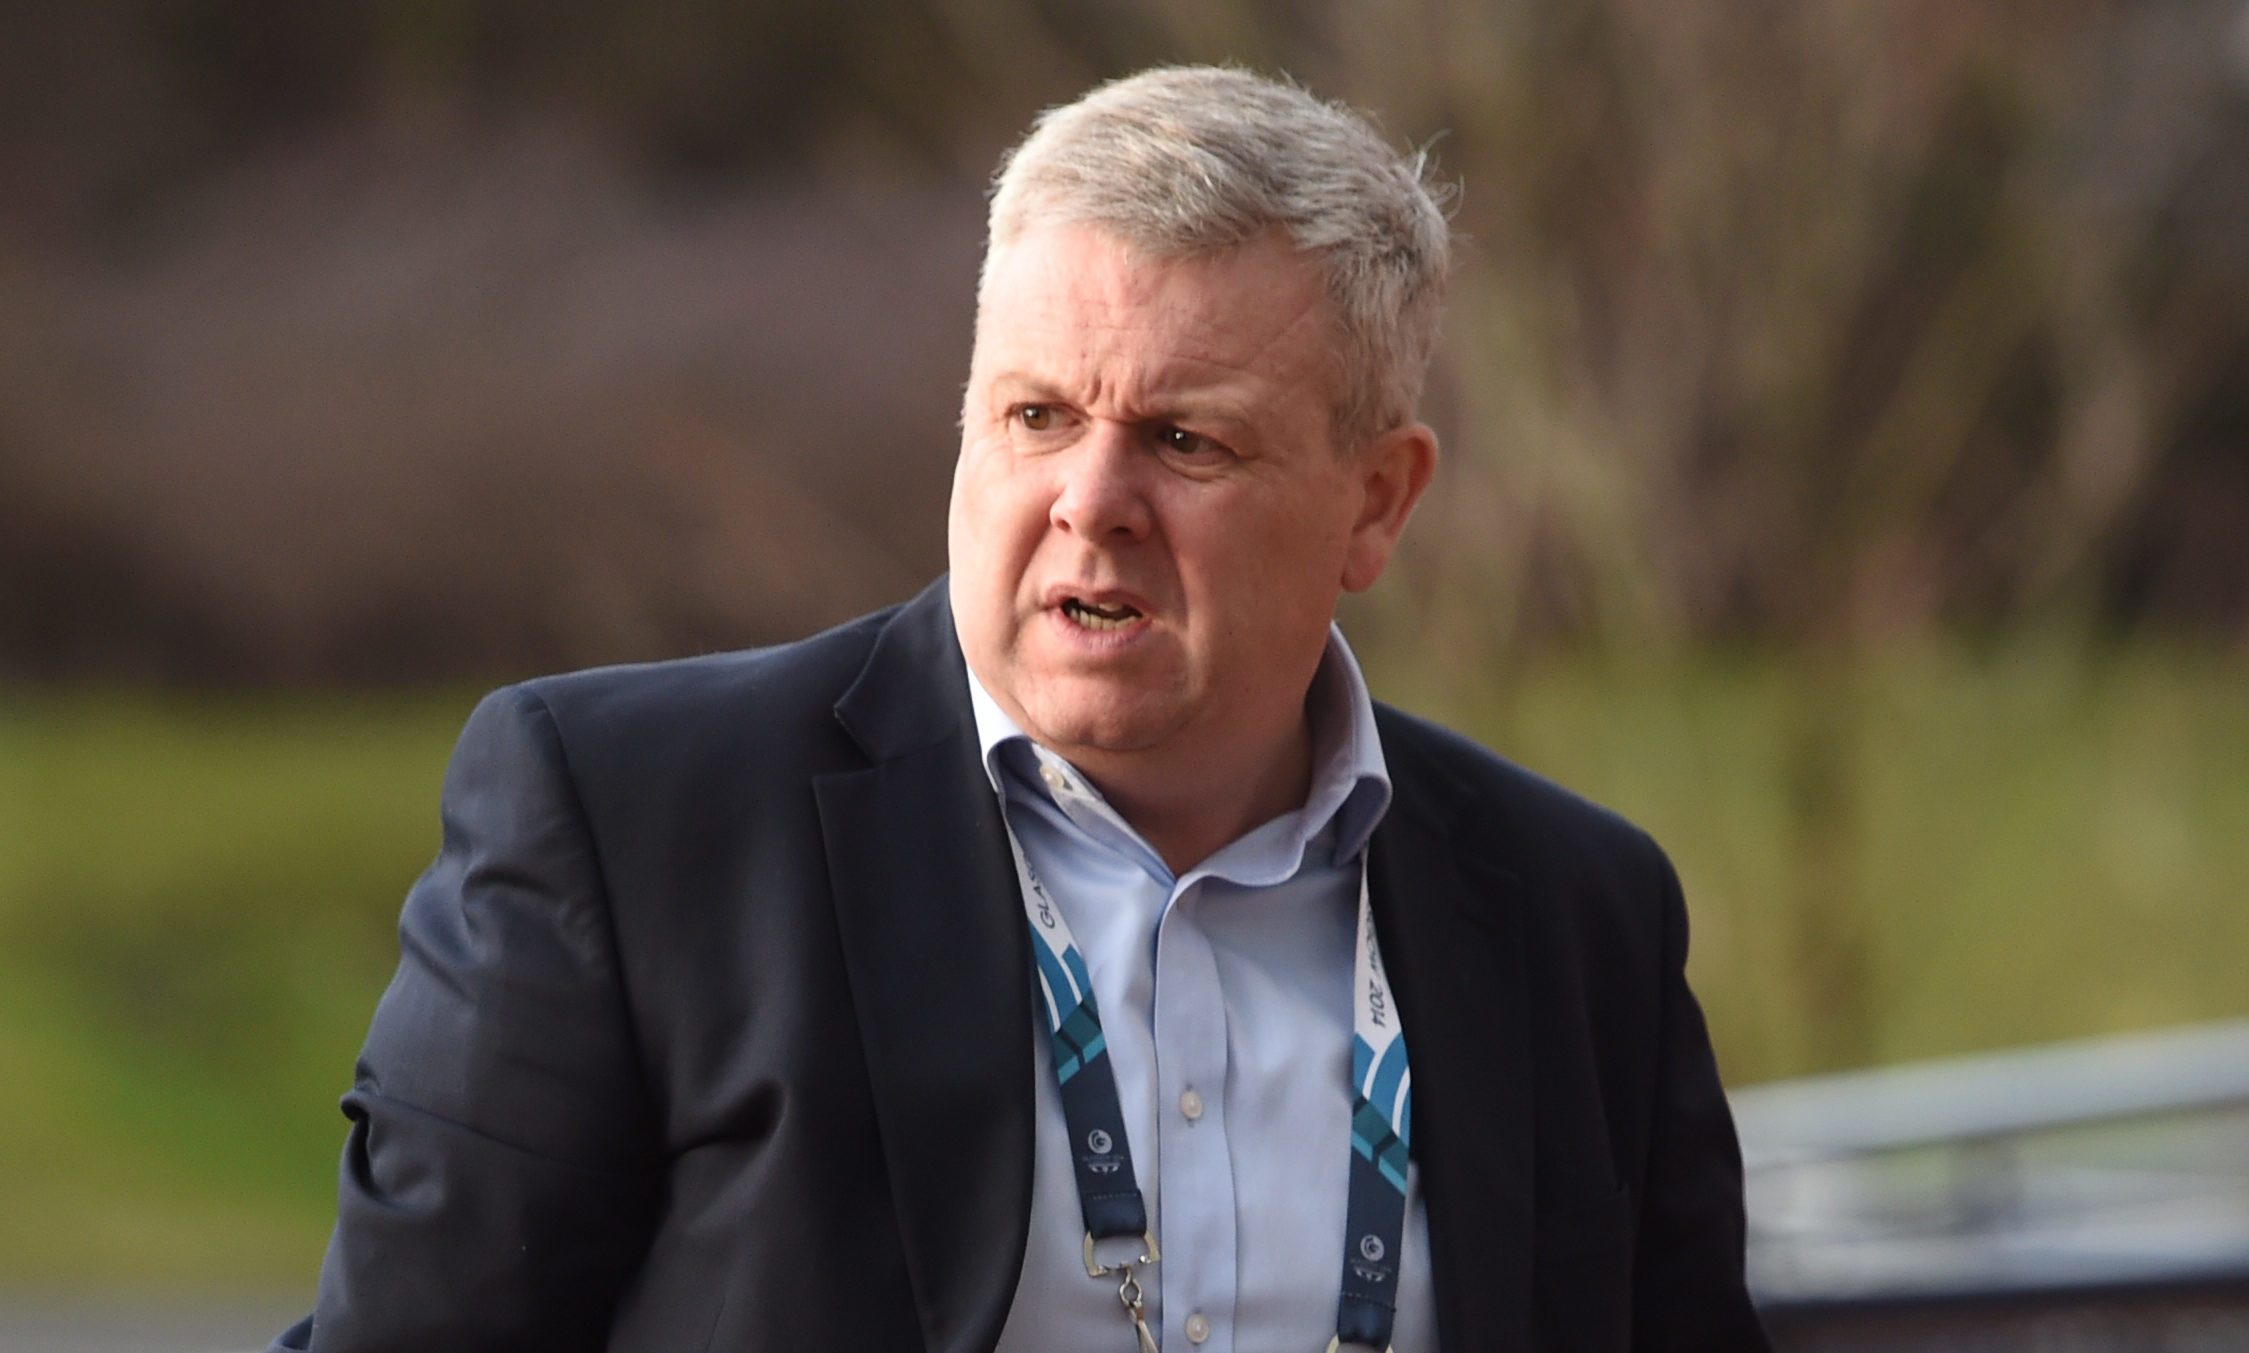 Scottish Golf chief executive Andrew McKinlay quit last week.